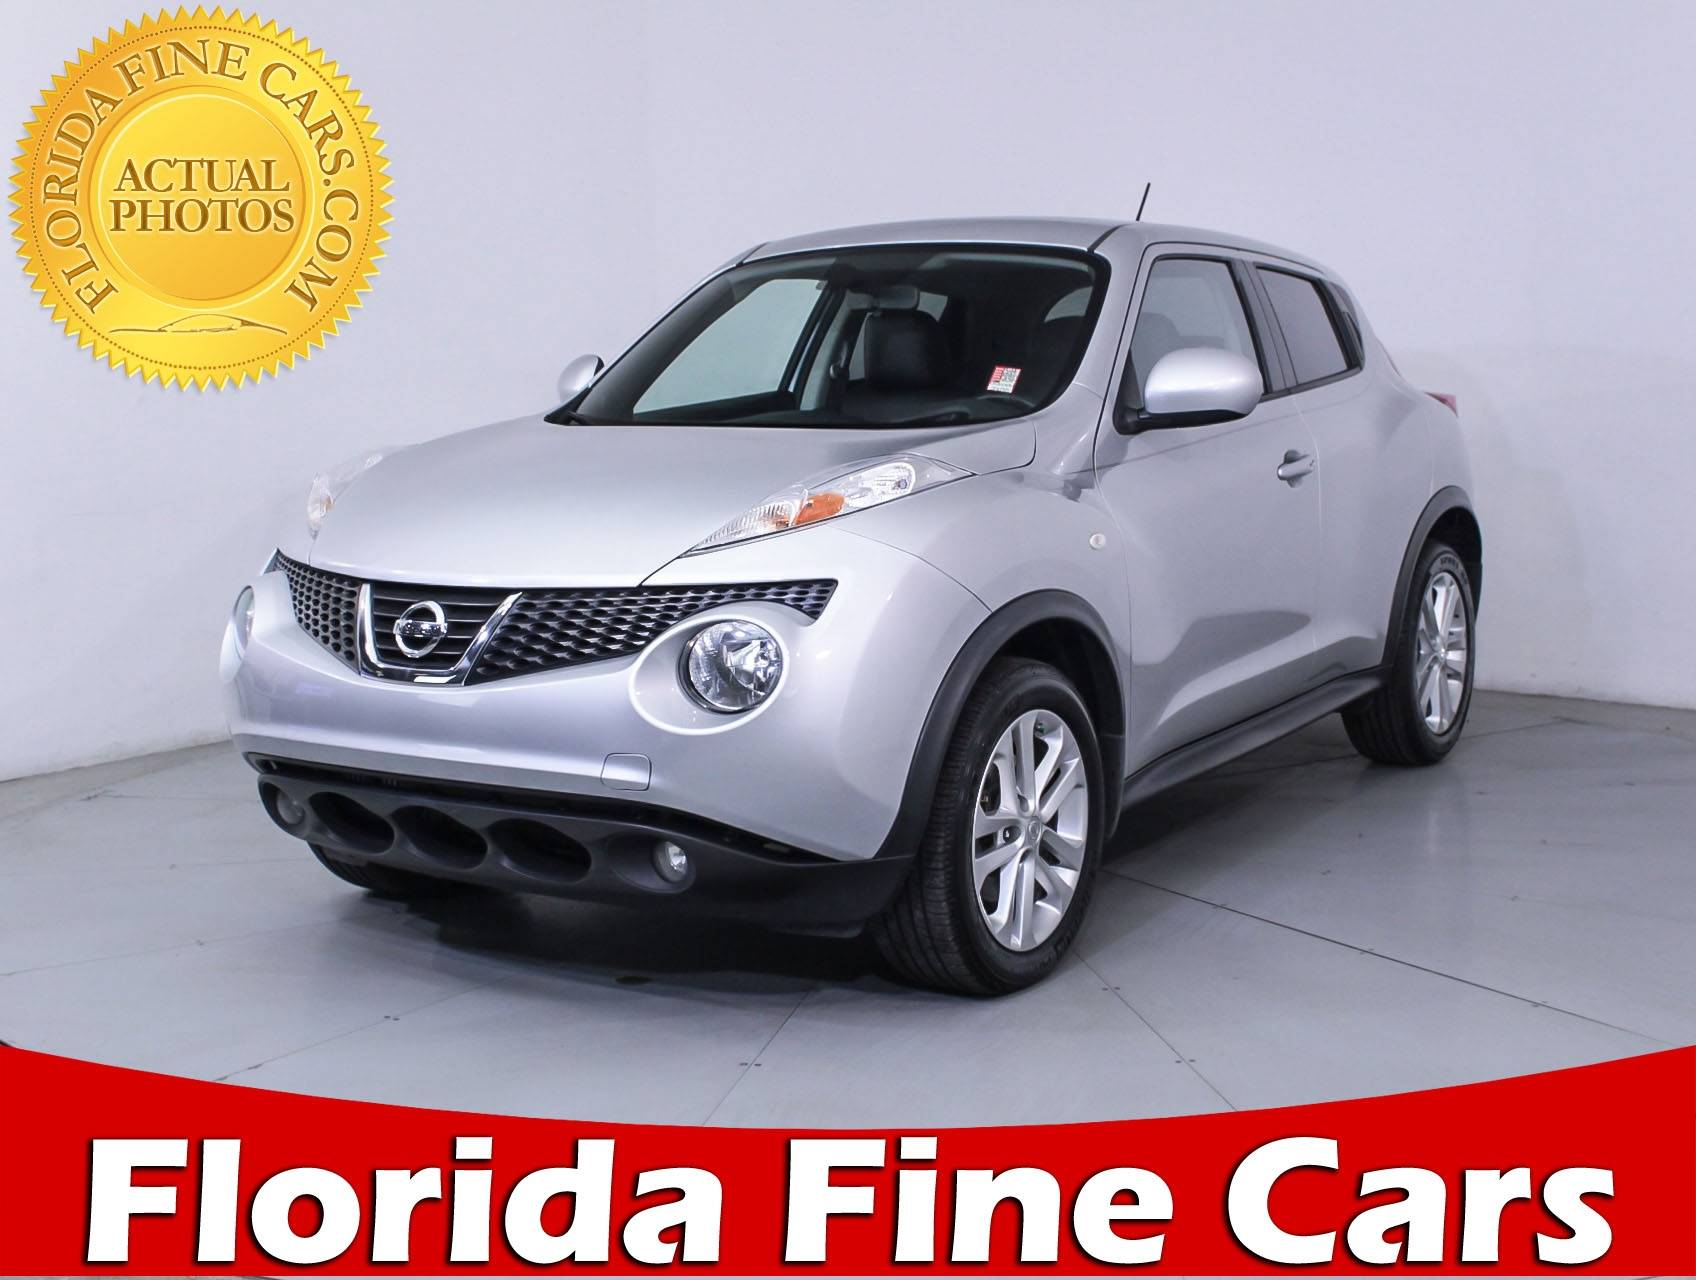 wheel nissan front price interior features s suv reviews photos drive juke